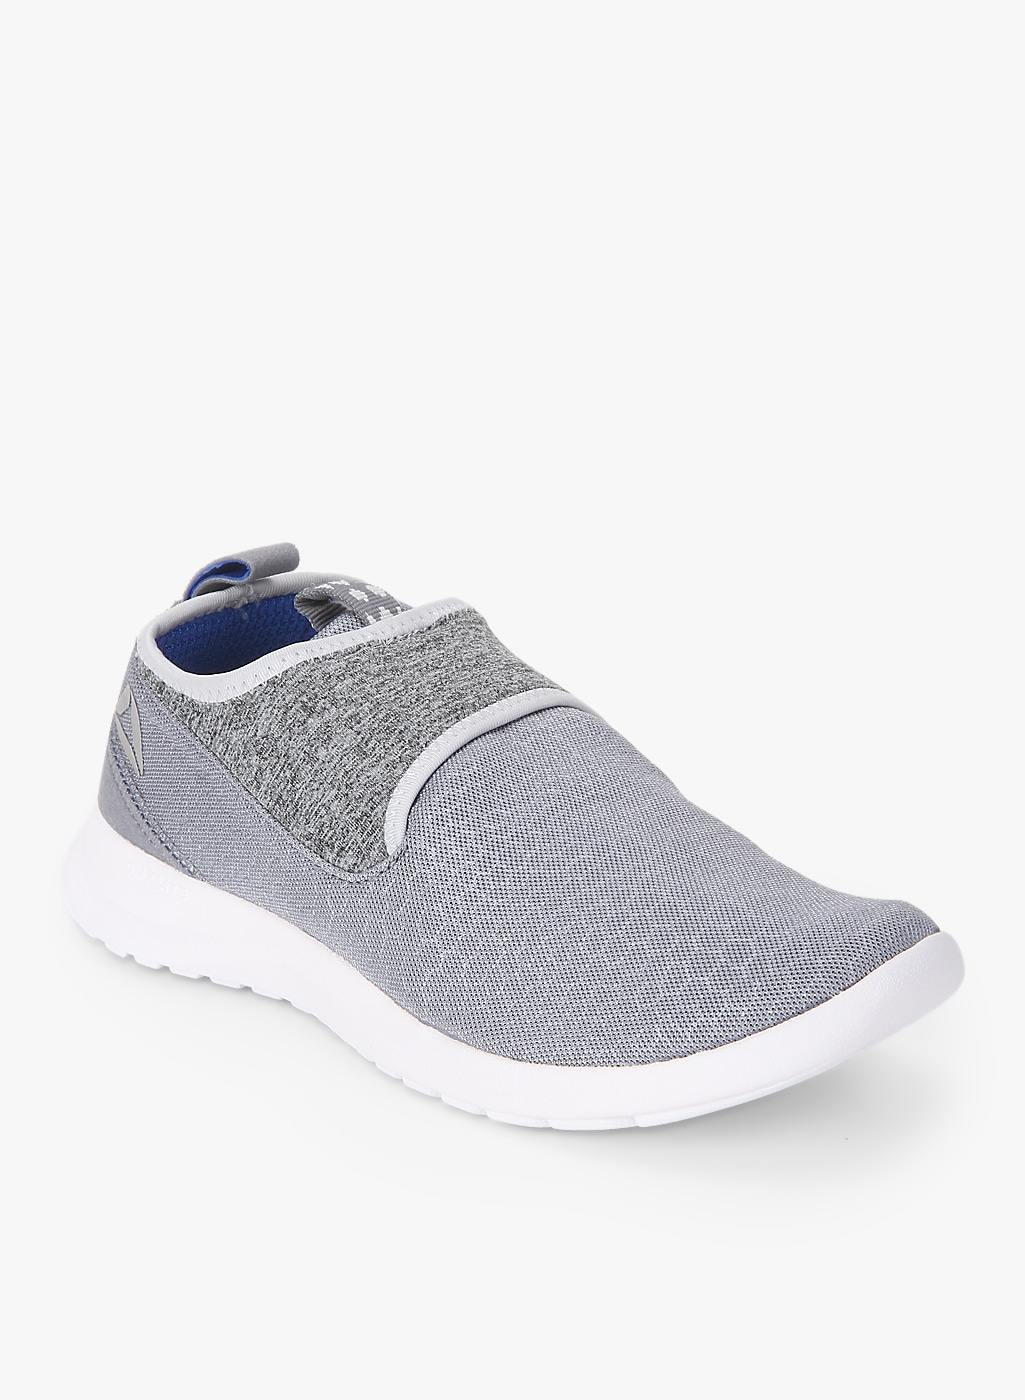 4a5405a49561 Reebok Lite Ride Sweatshirts Casual Shoes - Buy Reebok Lite Ride  Sweatshirts Casual Shoes online in India